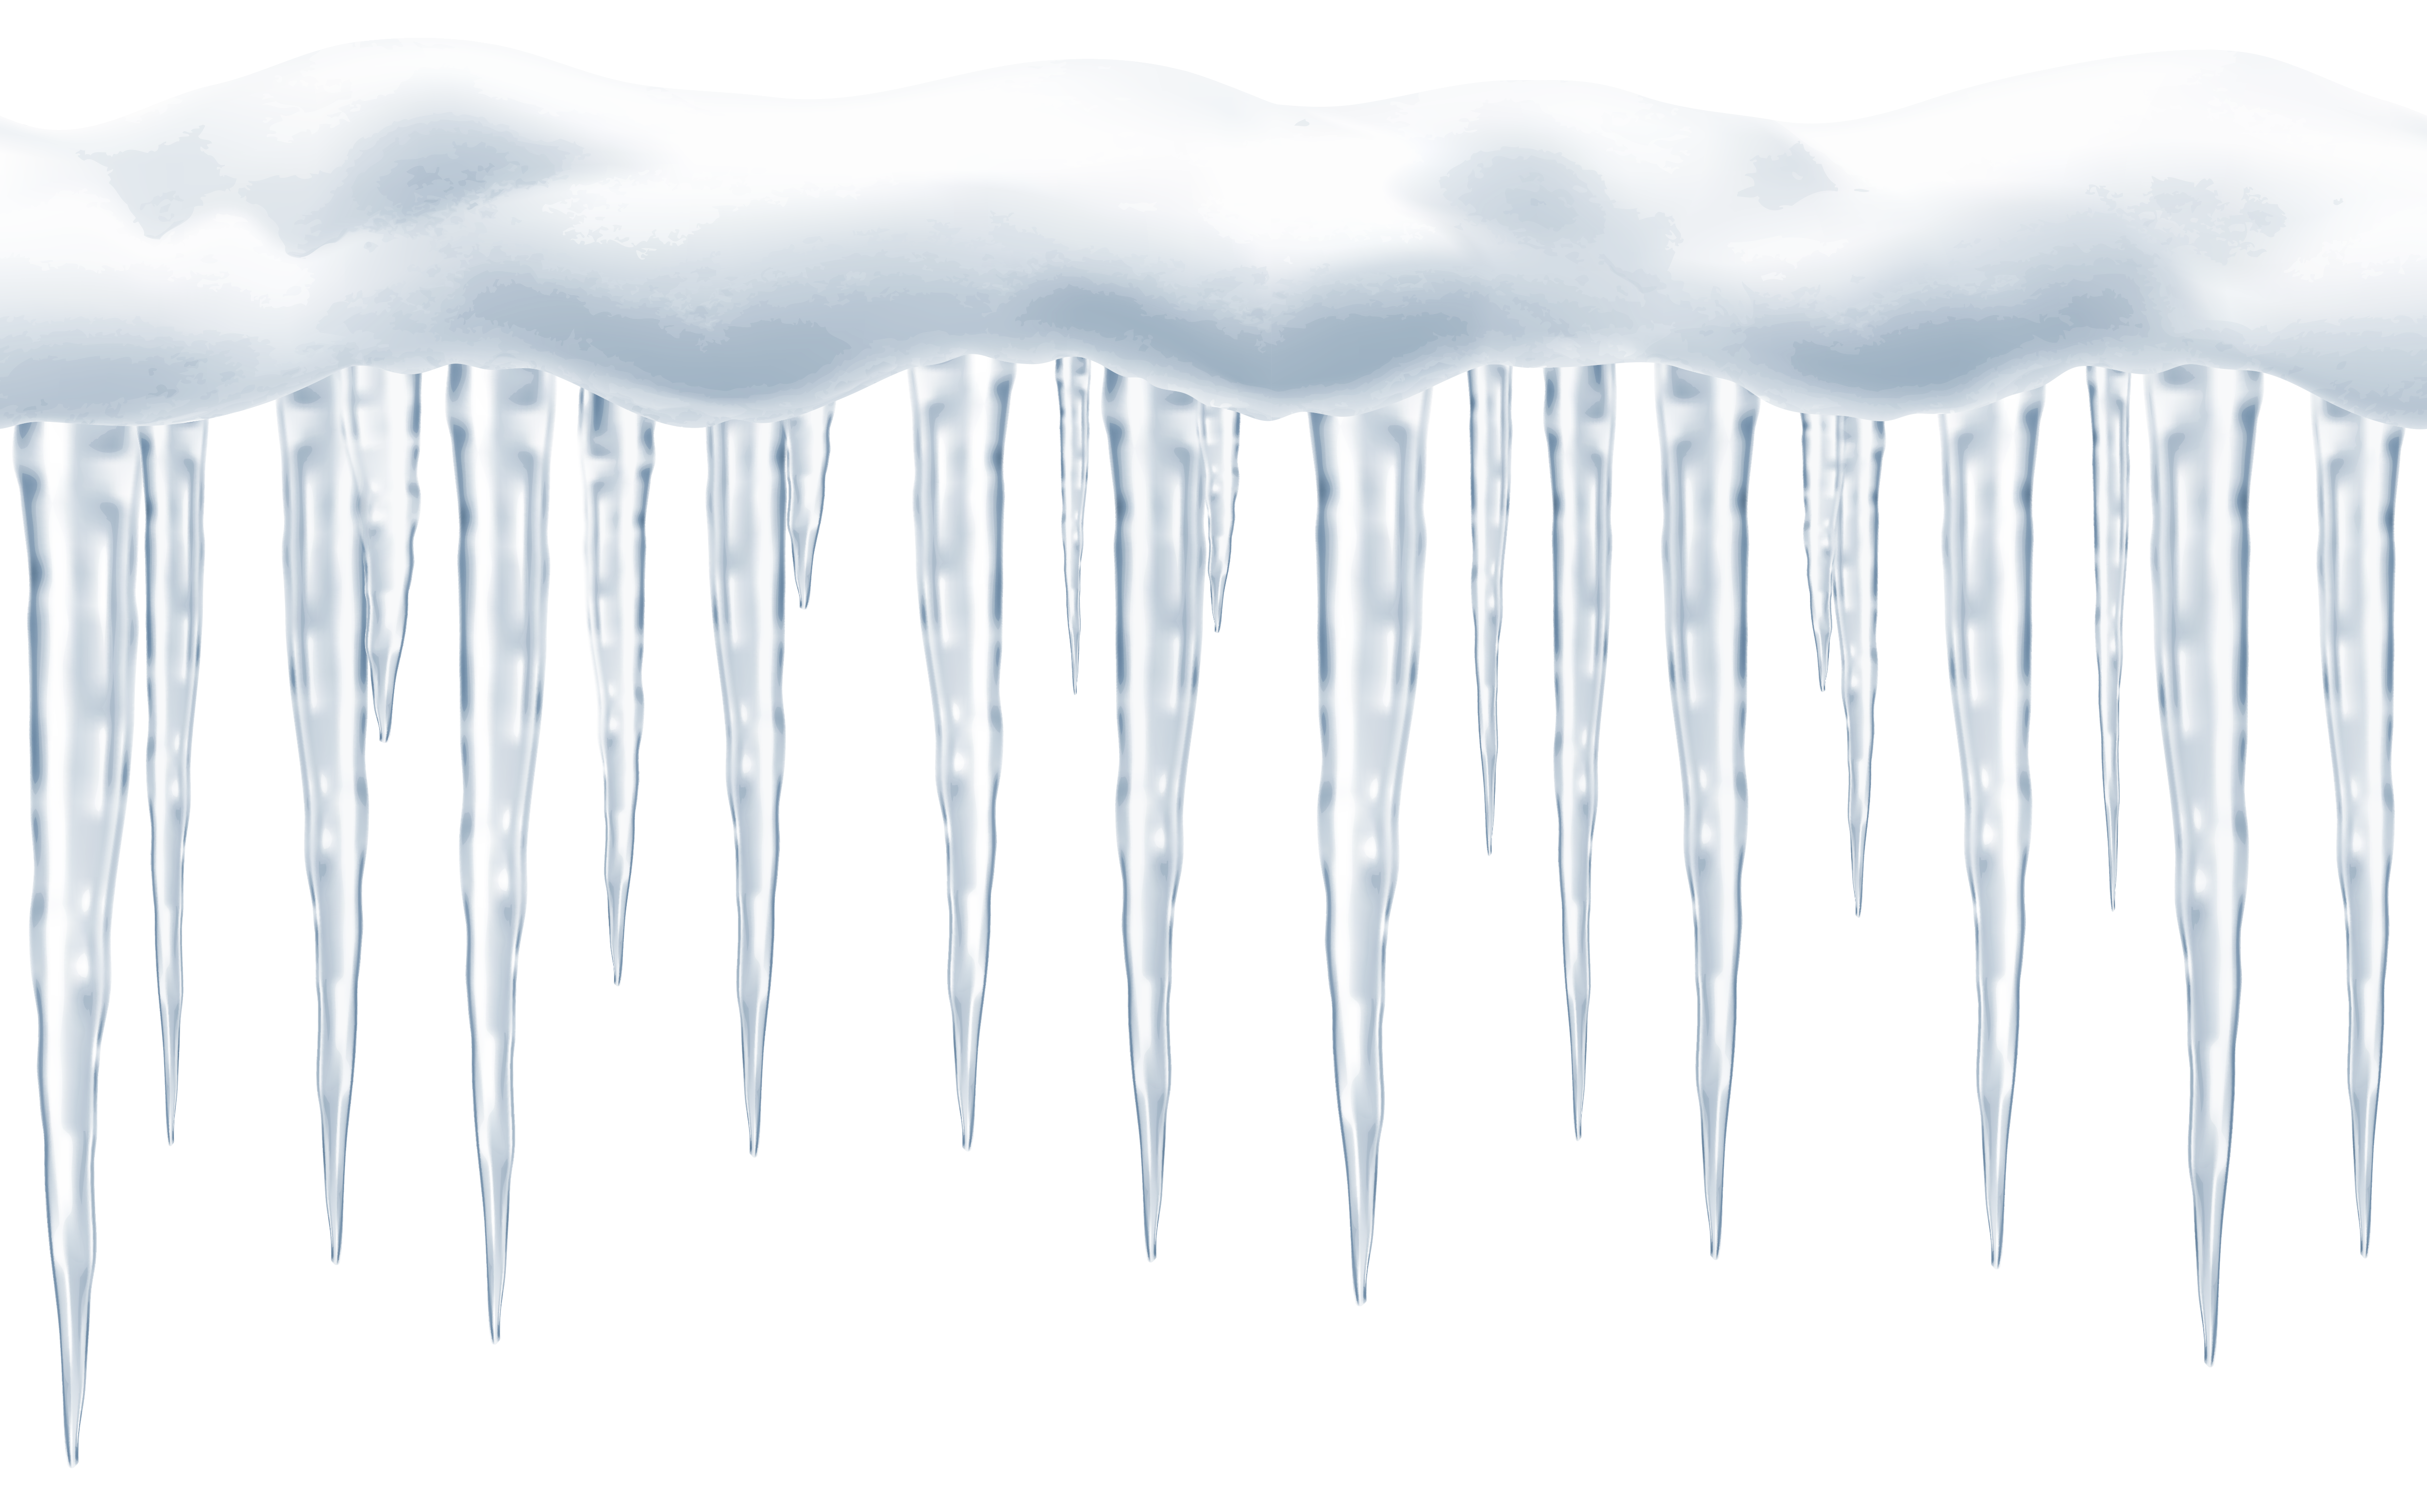 Winter Coloring Page | Cold Guy Covered In Icicles | Coloring ... | 3115x4999